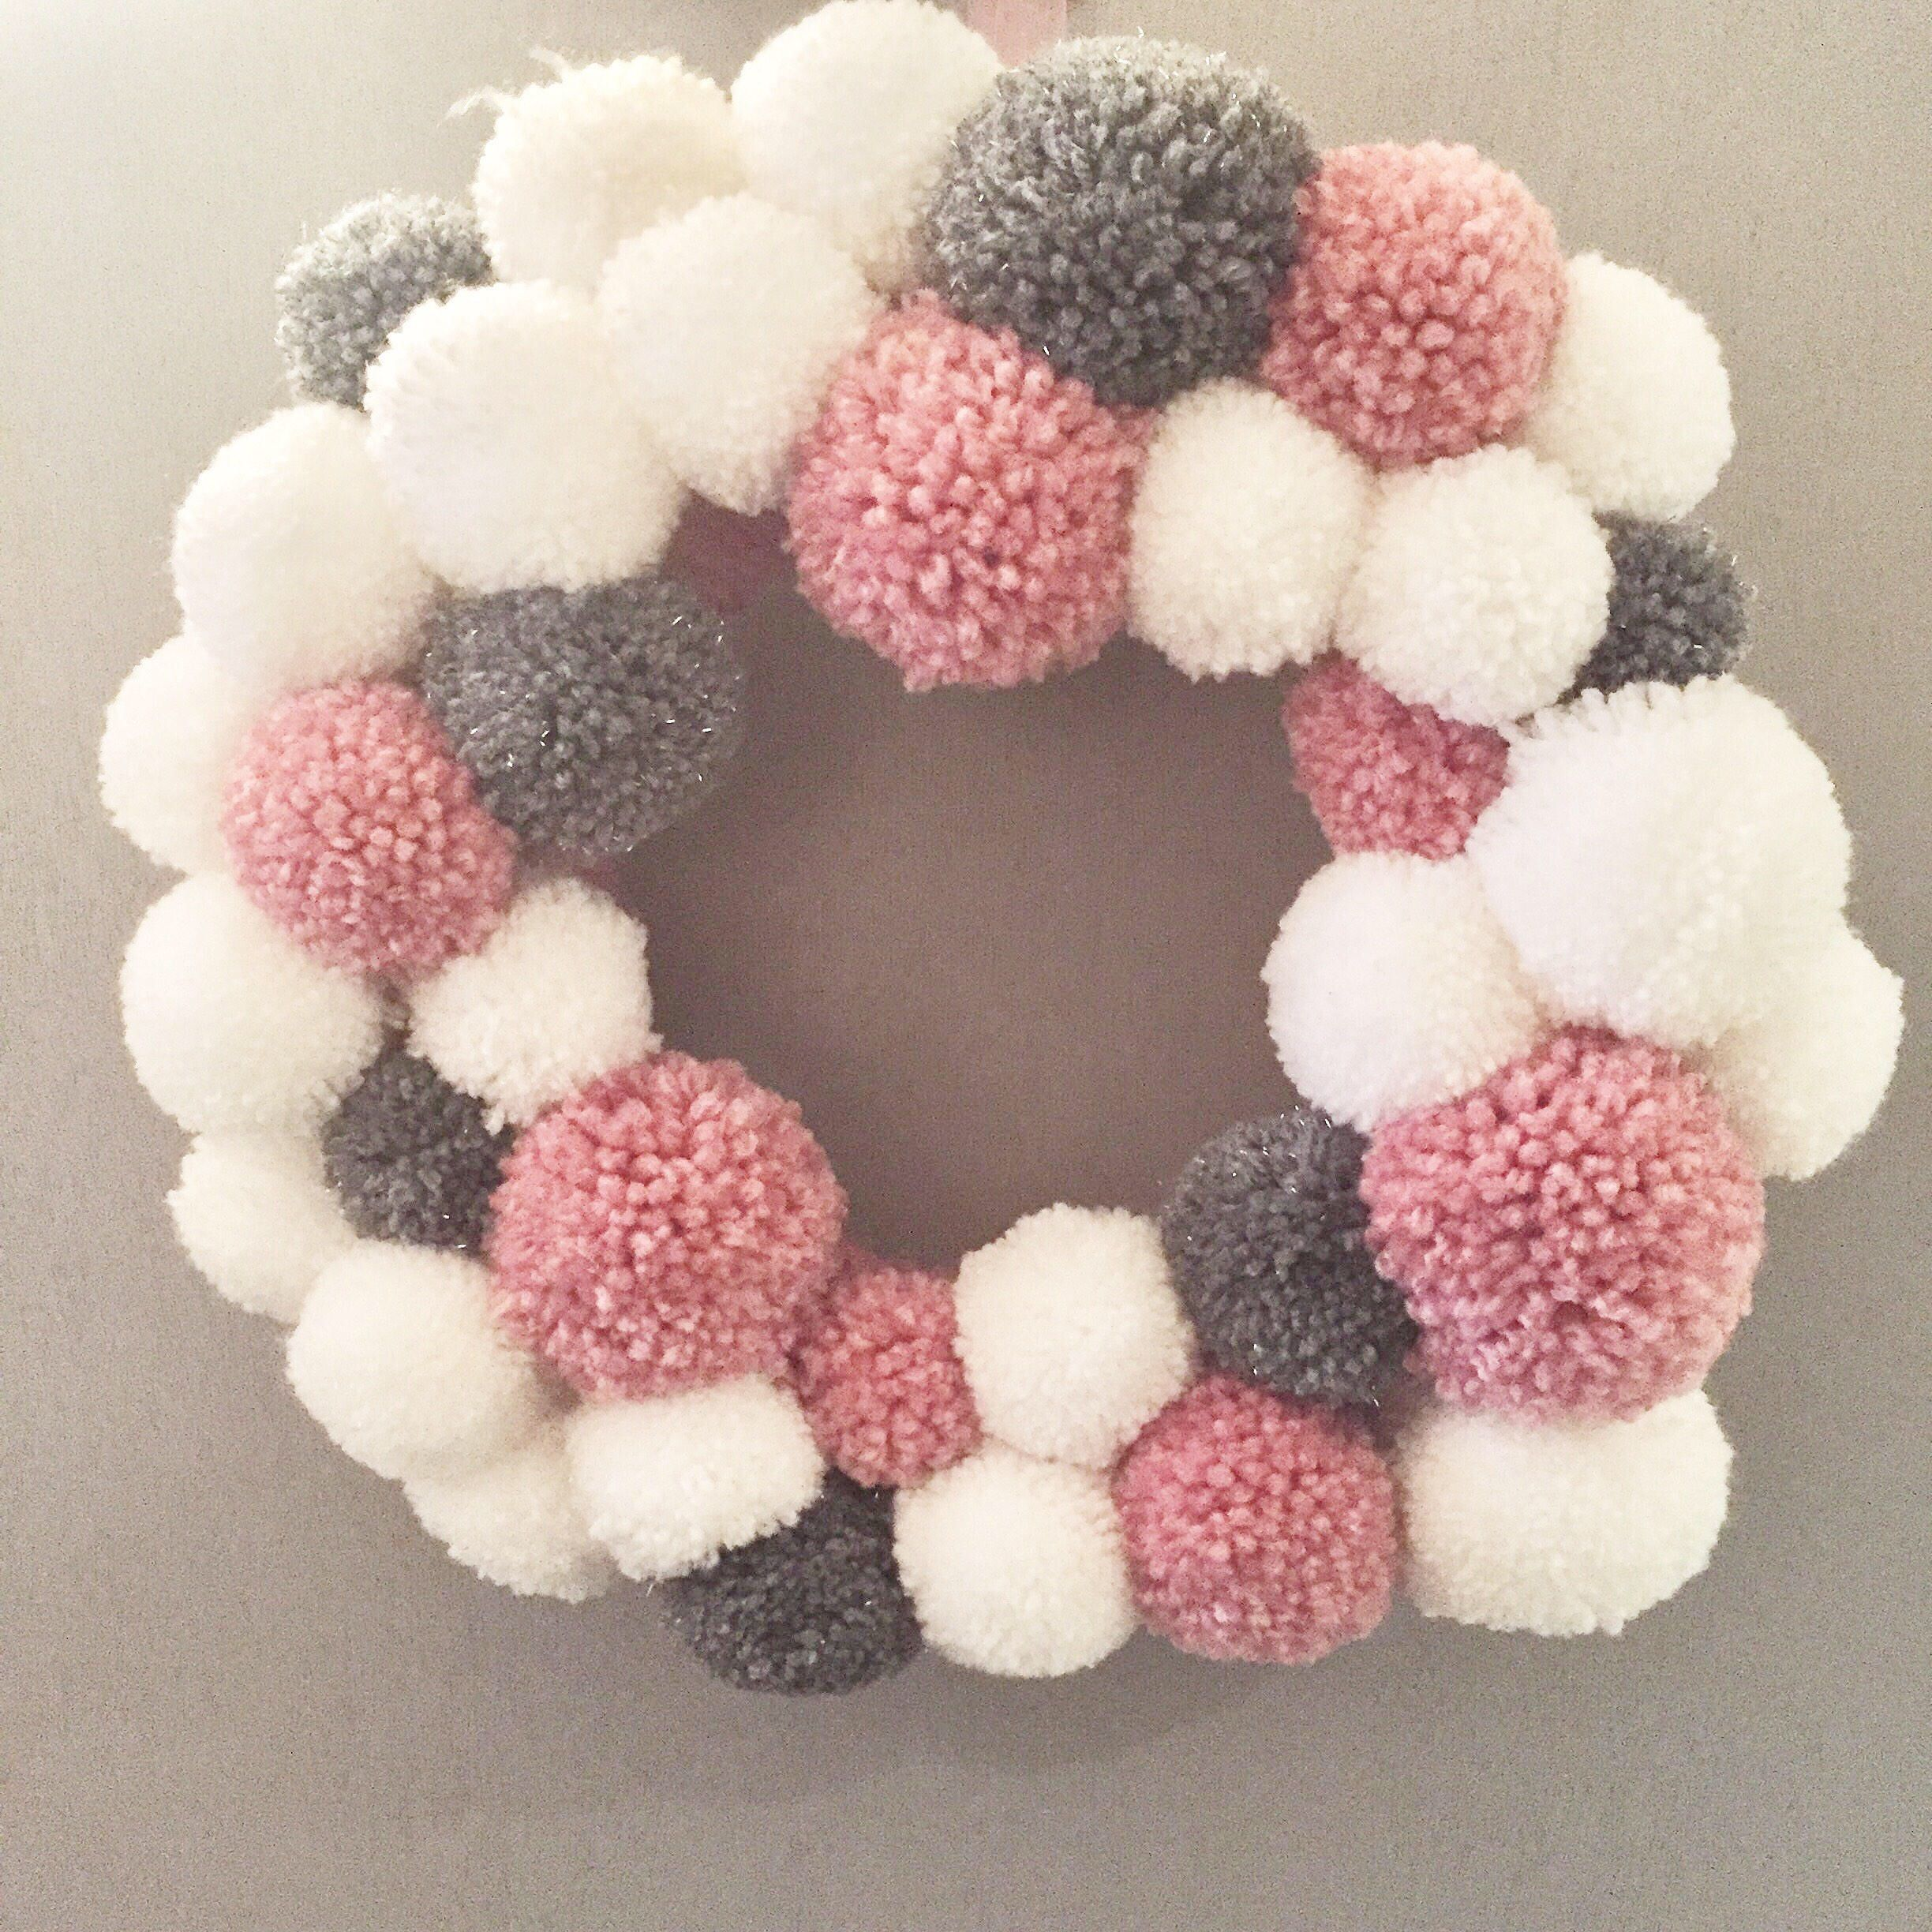 Pink, grey and white wool pom pom wreath - girls room, party, christmas, home decor images